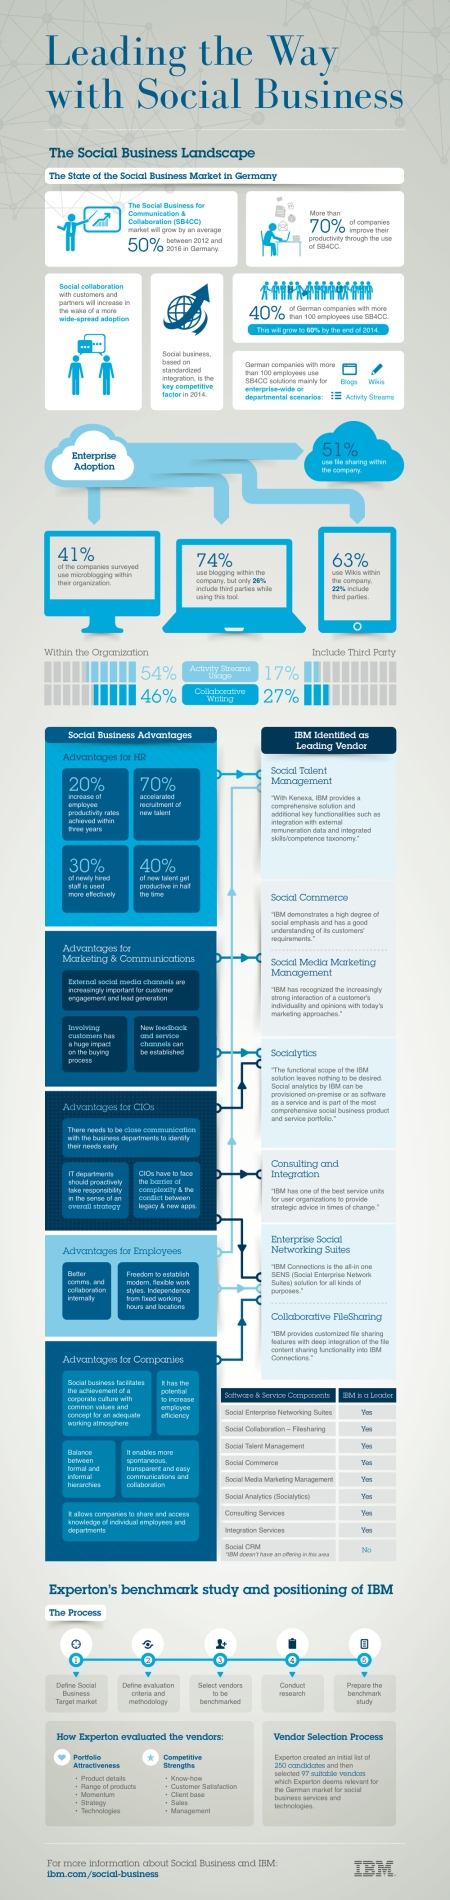 IBM_Social_Business_Experton_Benchmark_Infographic_English